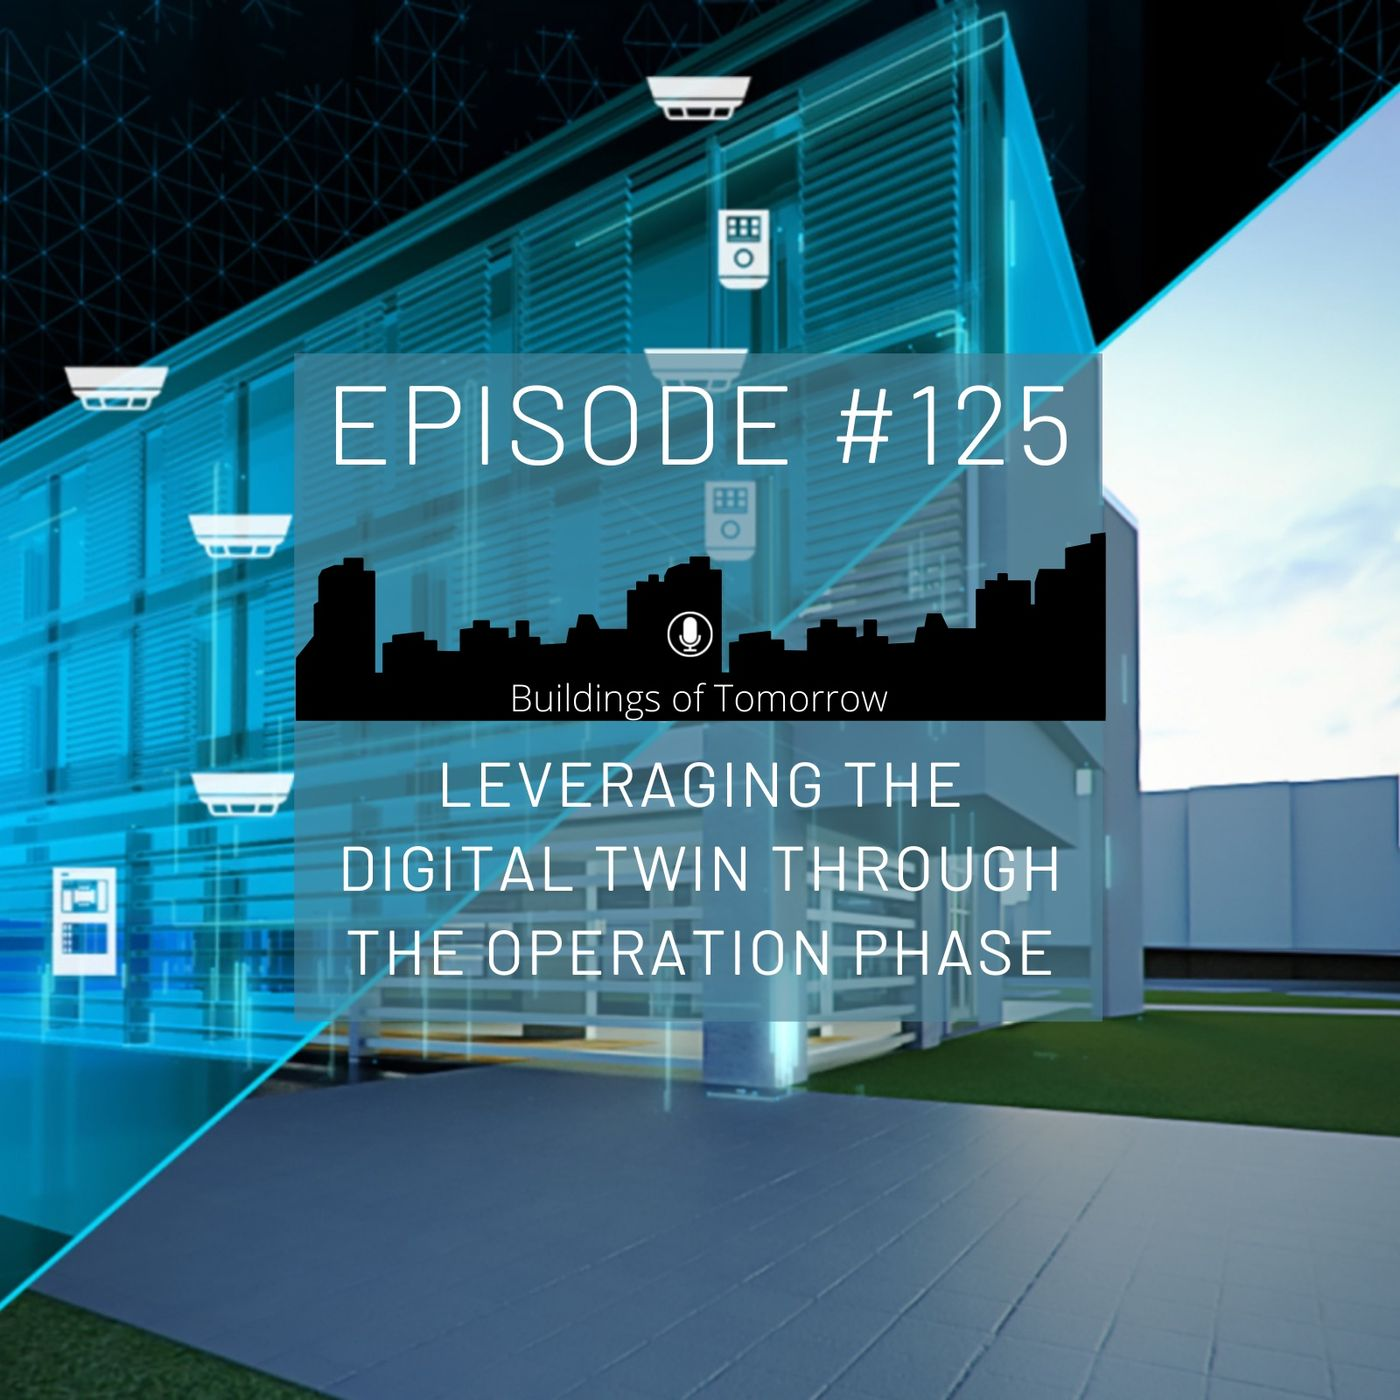 #125 Leveraging the Digital Twin through the Operation Phase